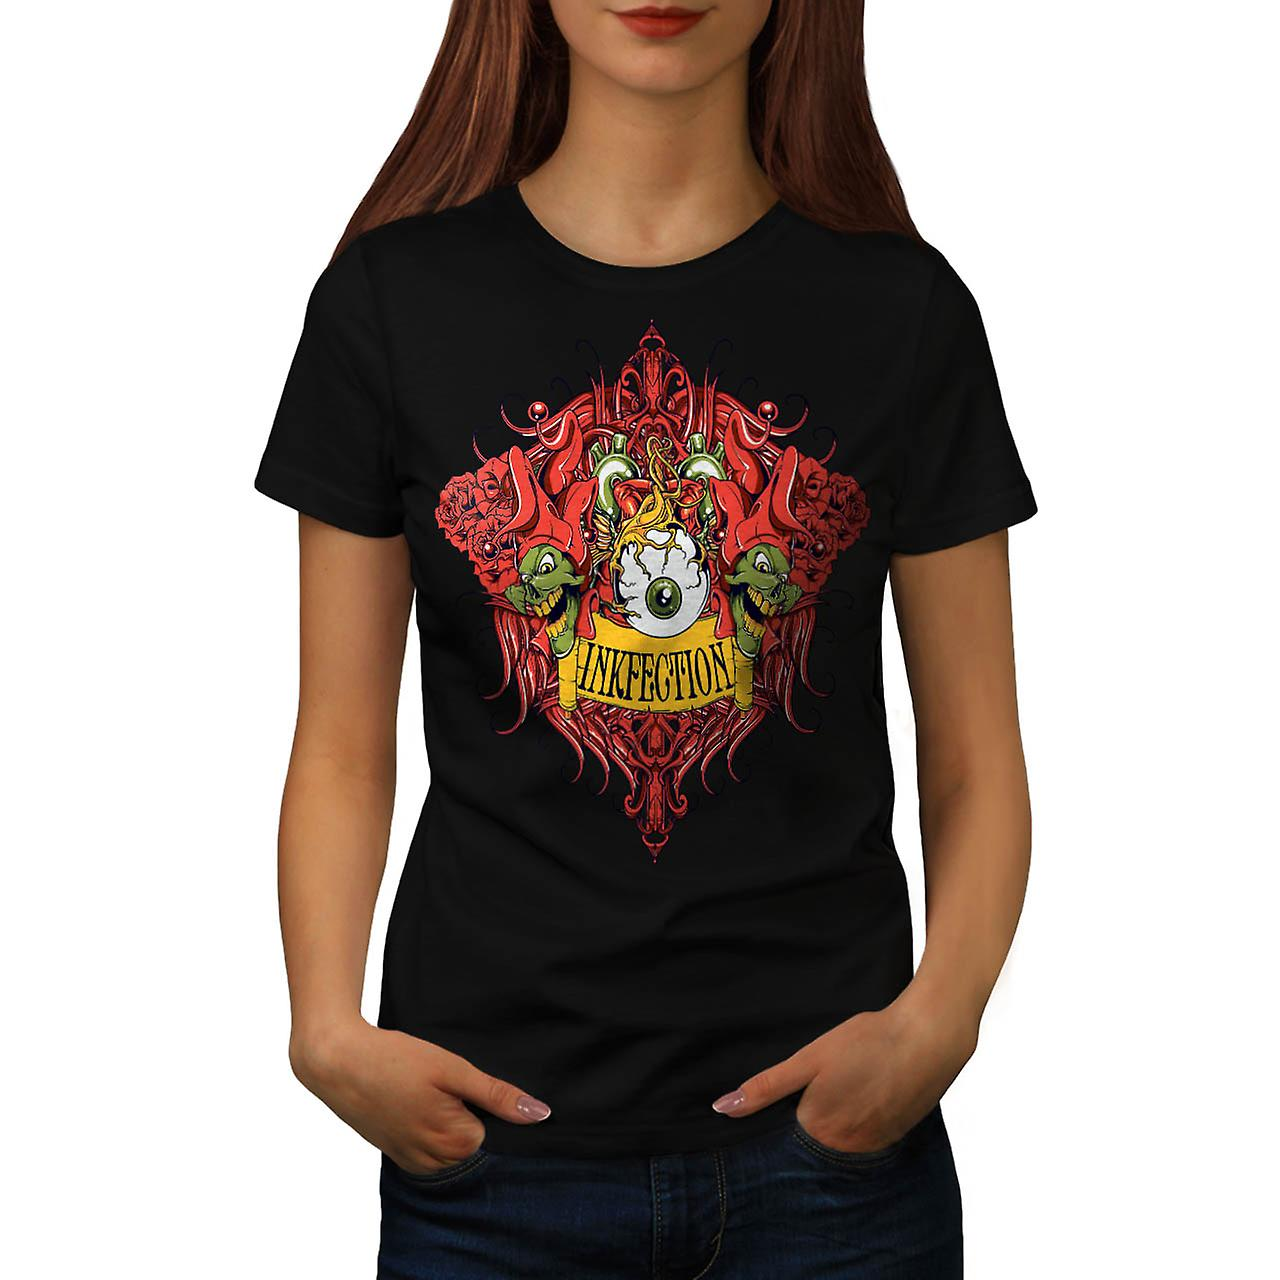 Tinte-Infektion Tattoo Grinch Auge Frauen T-shirt schwarz | Wellcoda